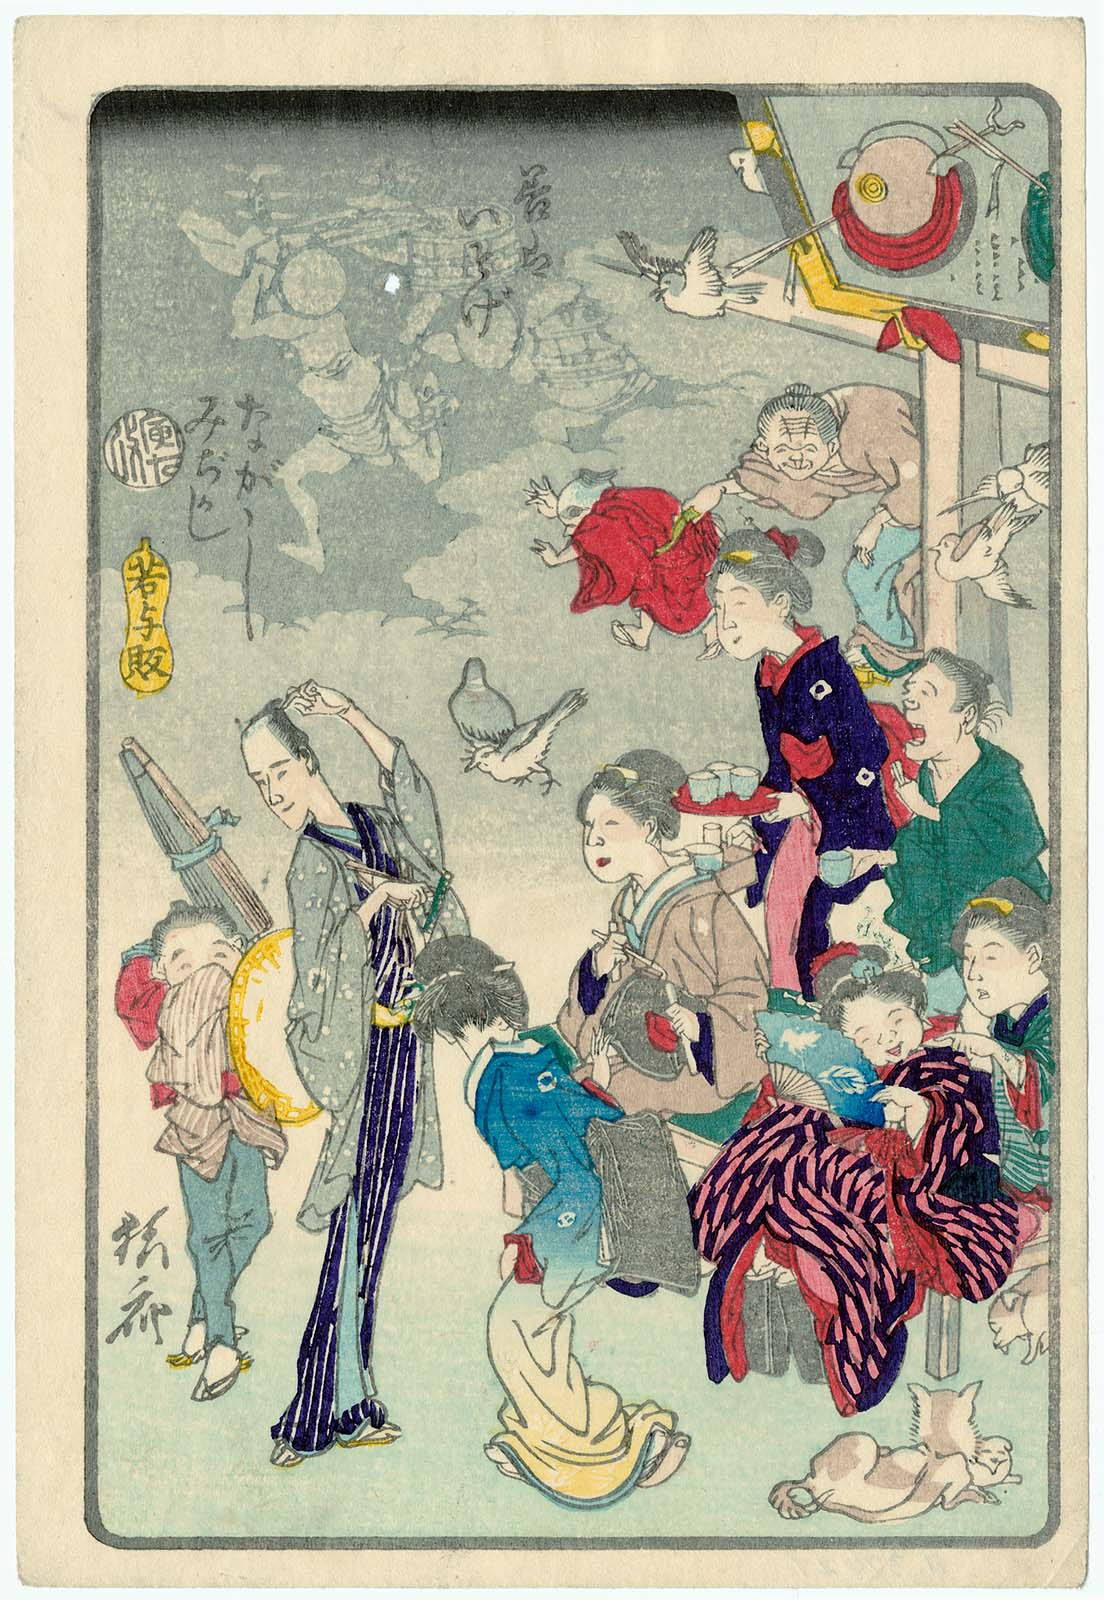 Hasten to Do Good (Zen wa isoge), The Long and Short of It (Nagashi mijikashi), from the series One Hundred Pictures by Kyôsai (Kyôsai hyakuzu)